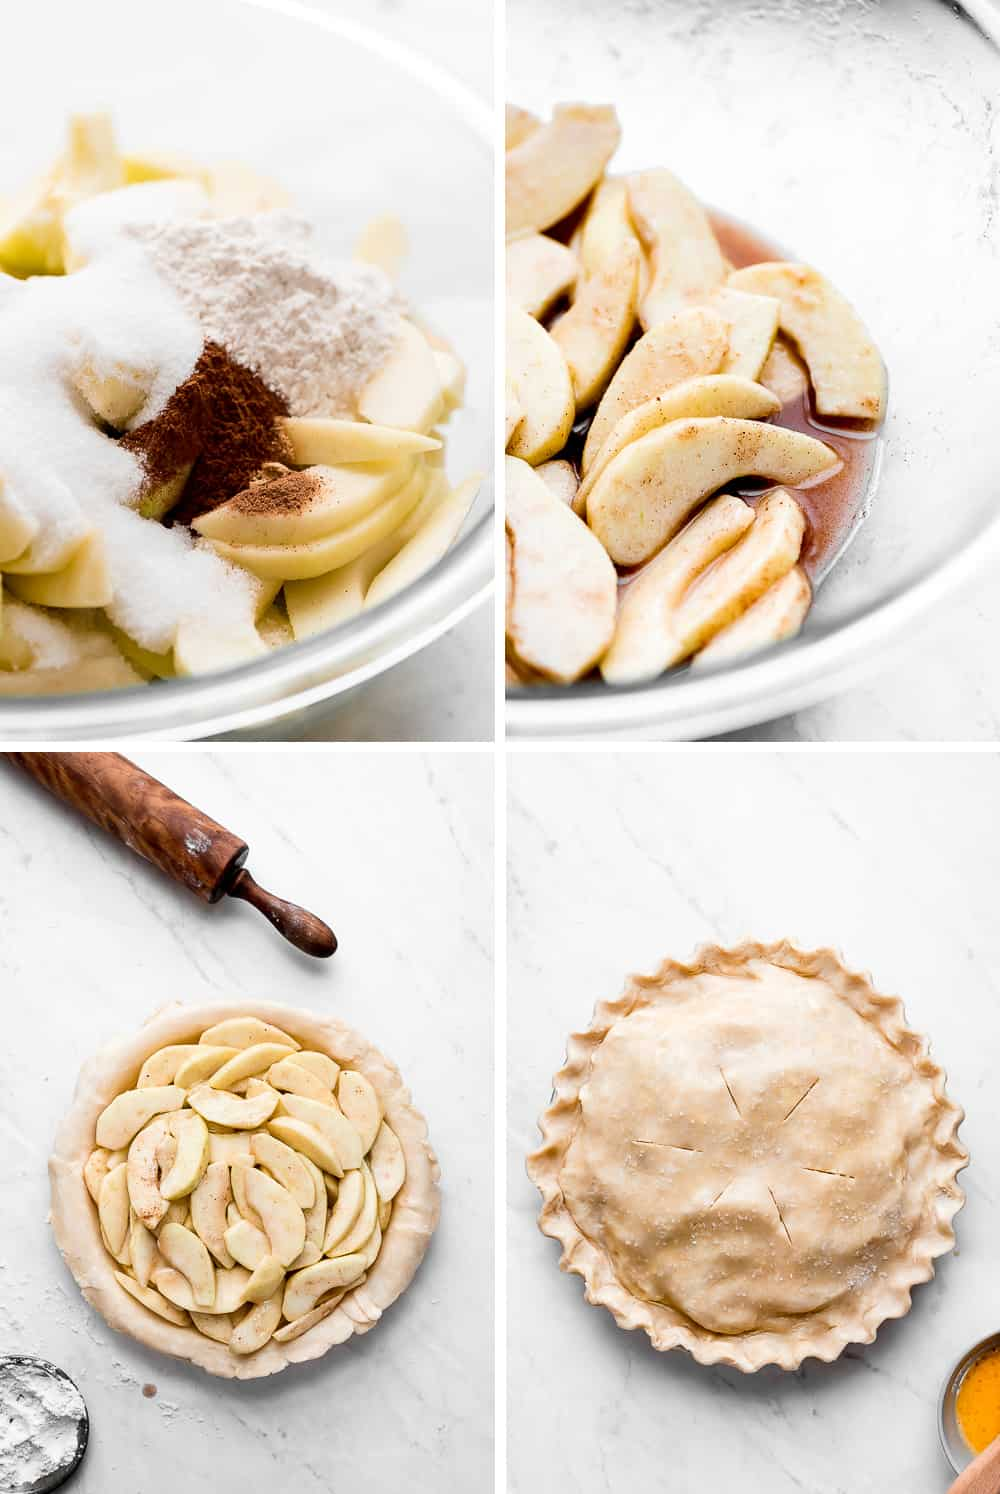 Apple pie making